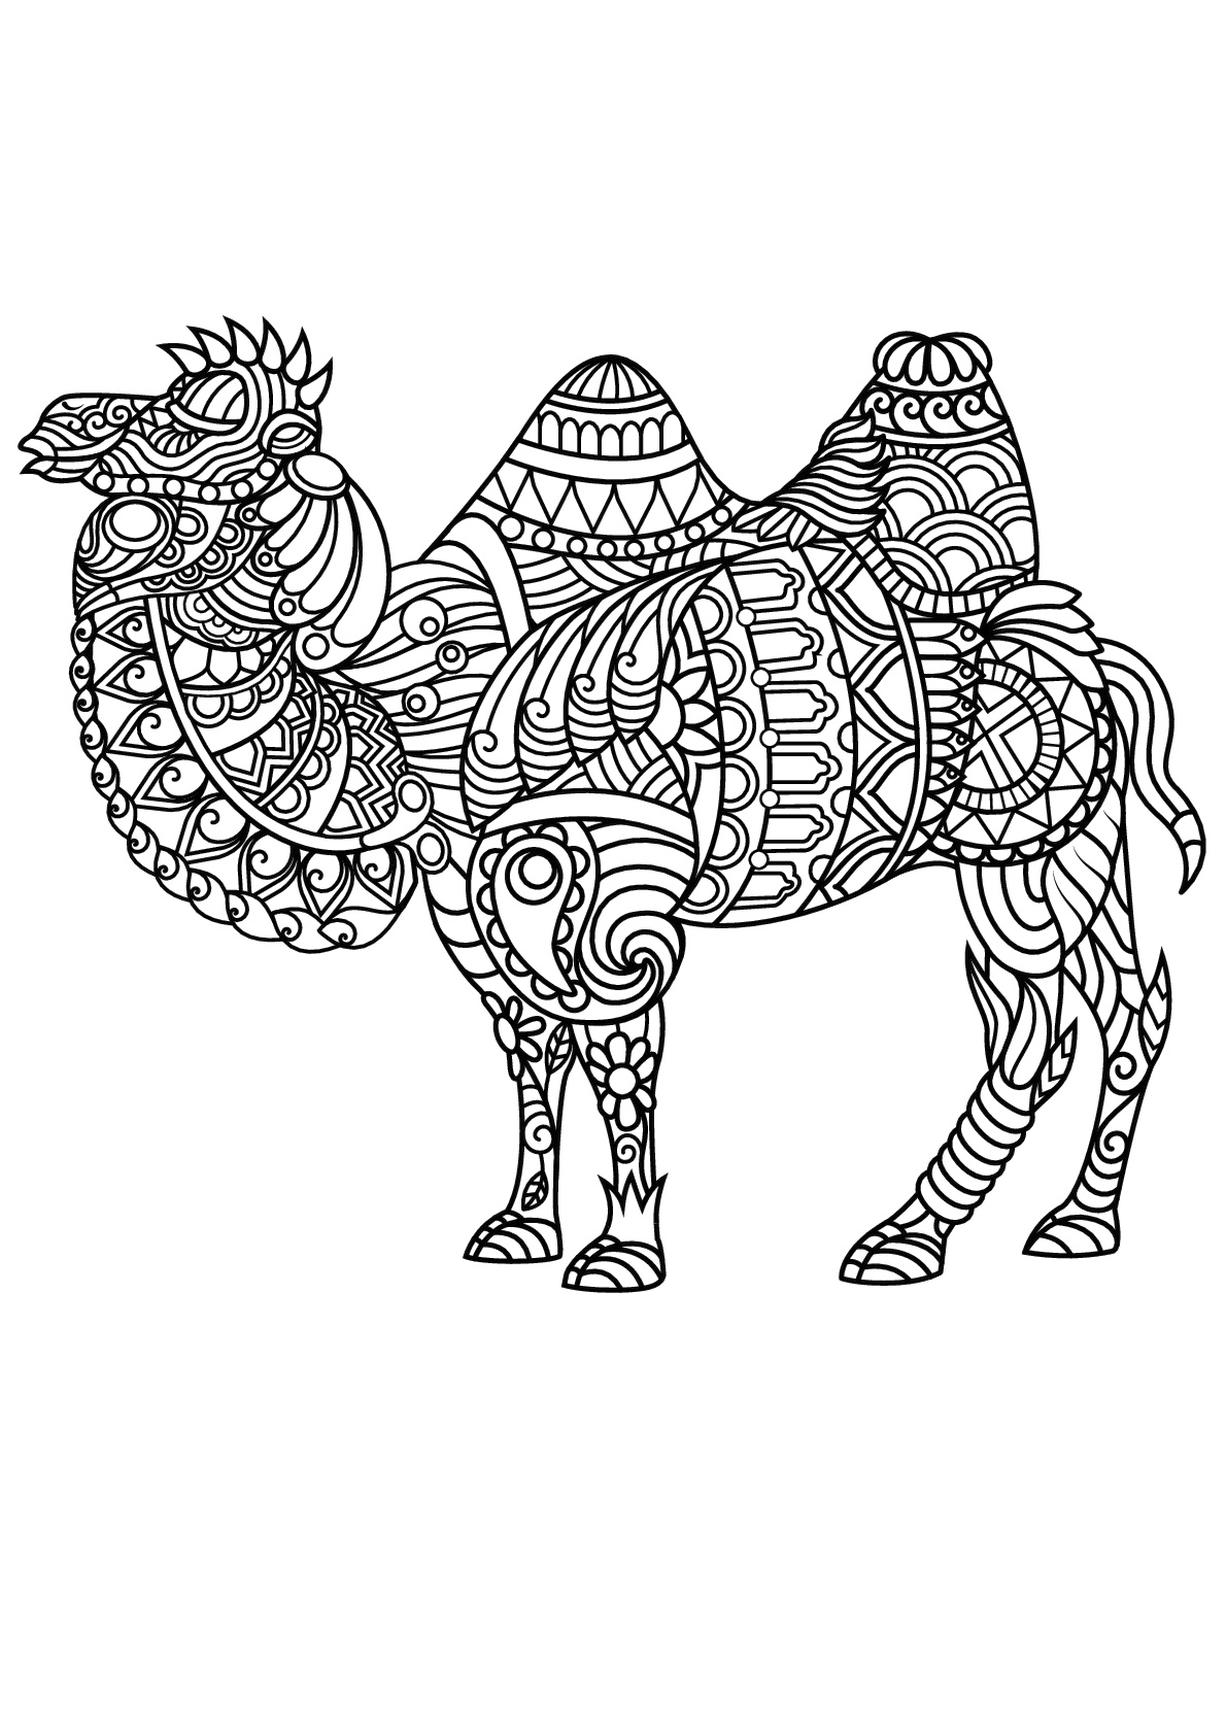 animal pictures coloring pages get this adult coloring pages animals camel 1 animal coloring pages pictures